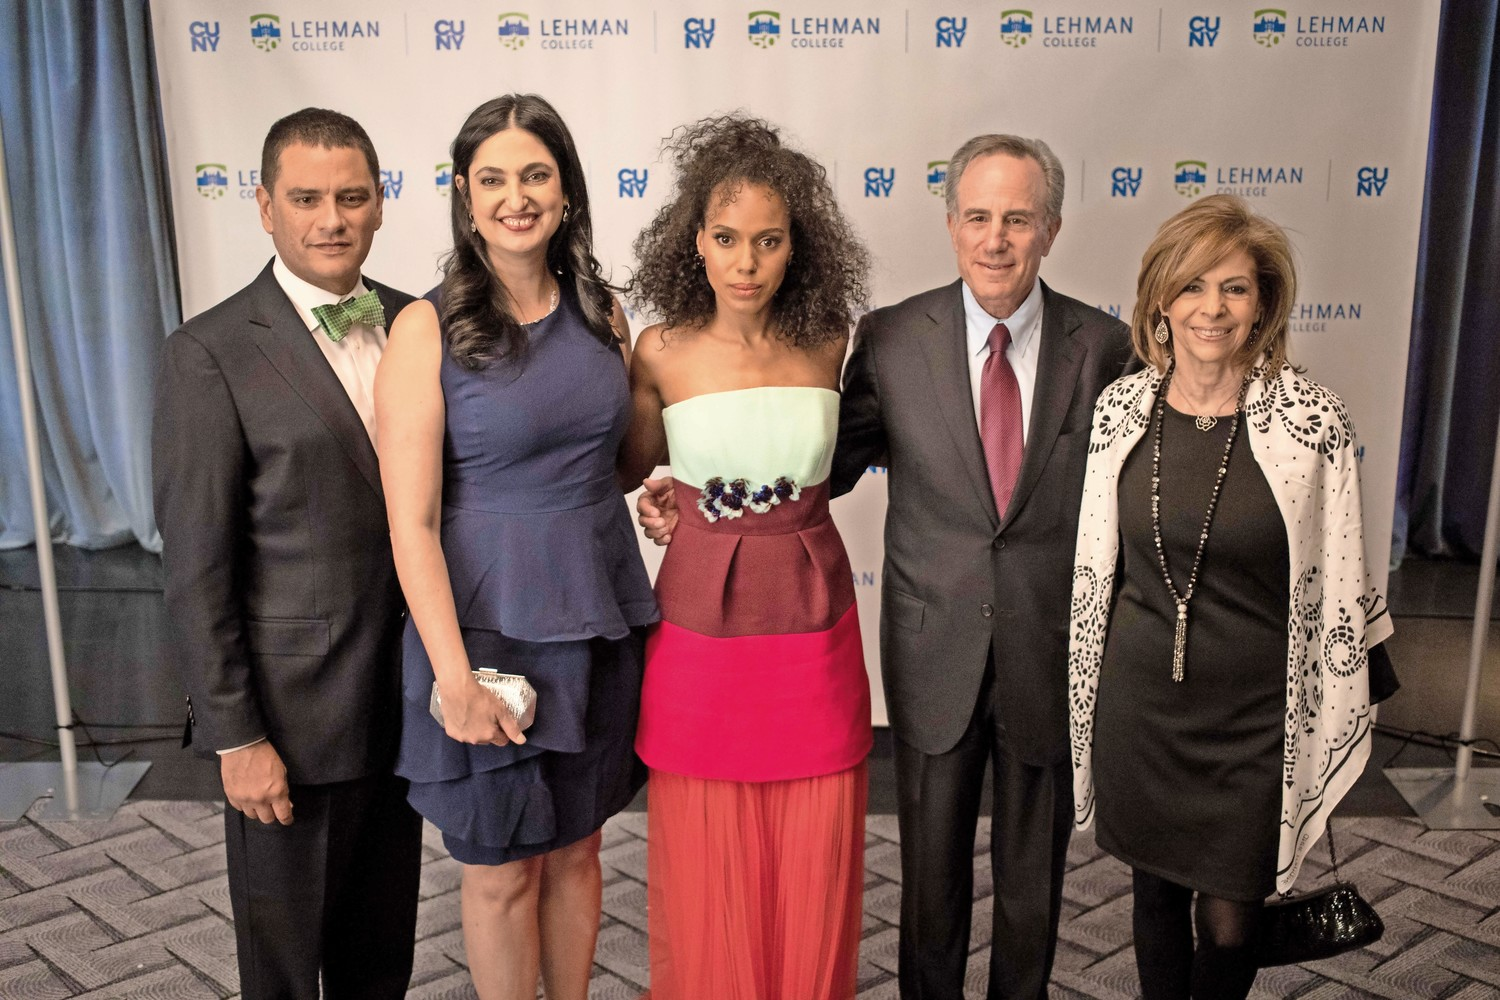 Lehman College honored the actress Kerry Washington with an award for artistic achievement at its 2018 gala.